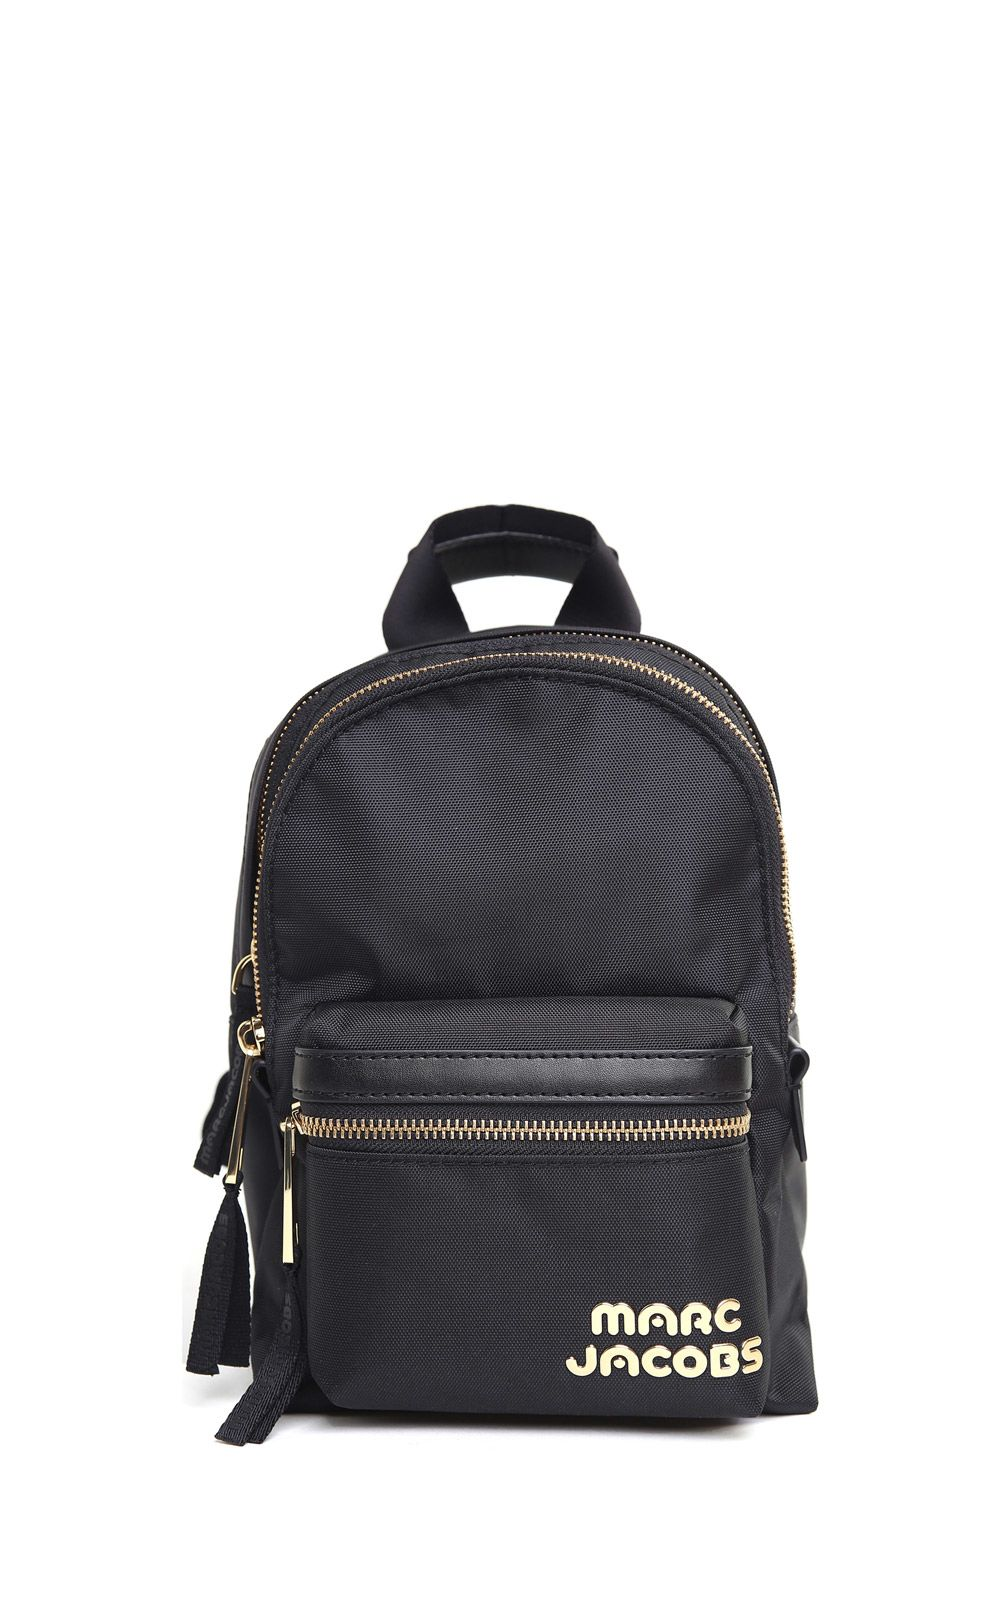 Track Pack Mini leather-trimmed nylon backpack Marc Jacobs Q5bzzIadR